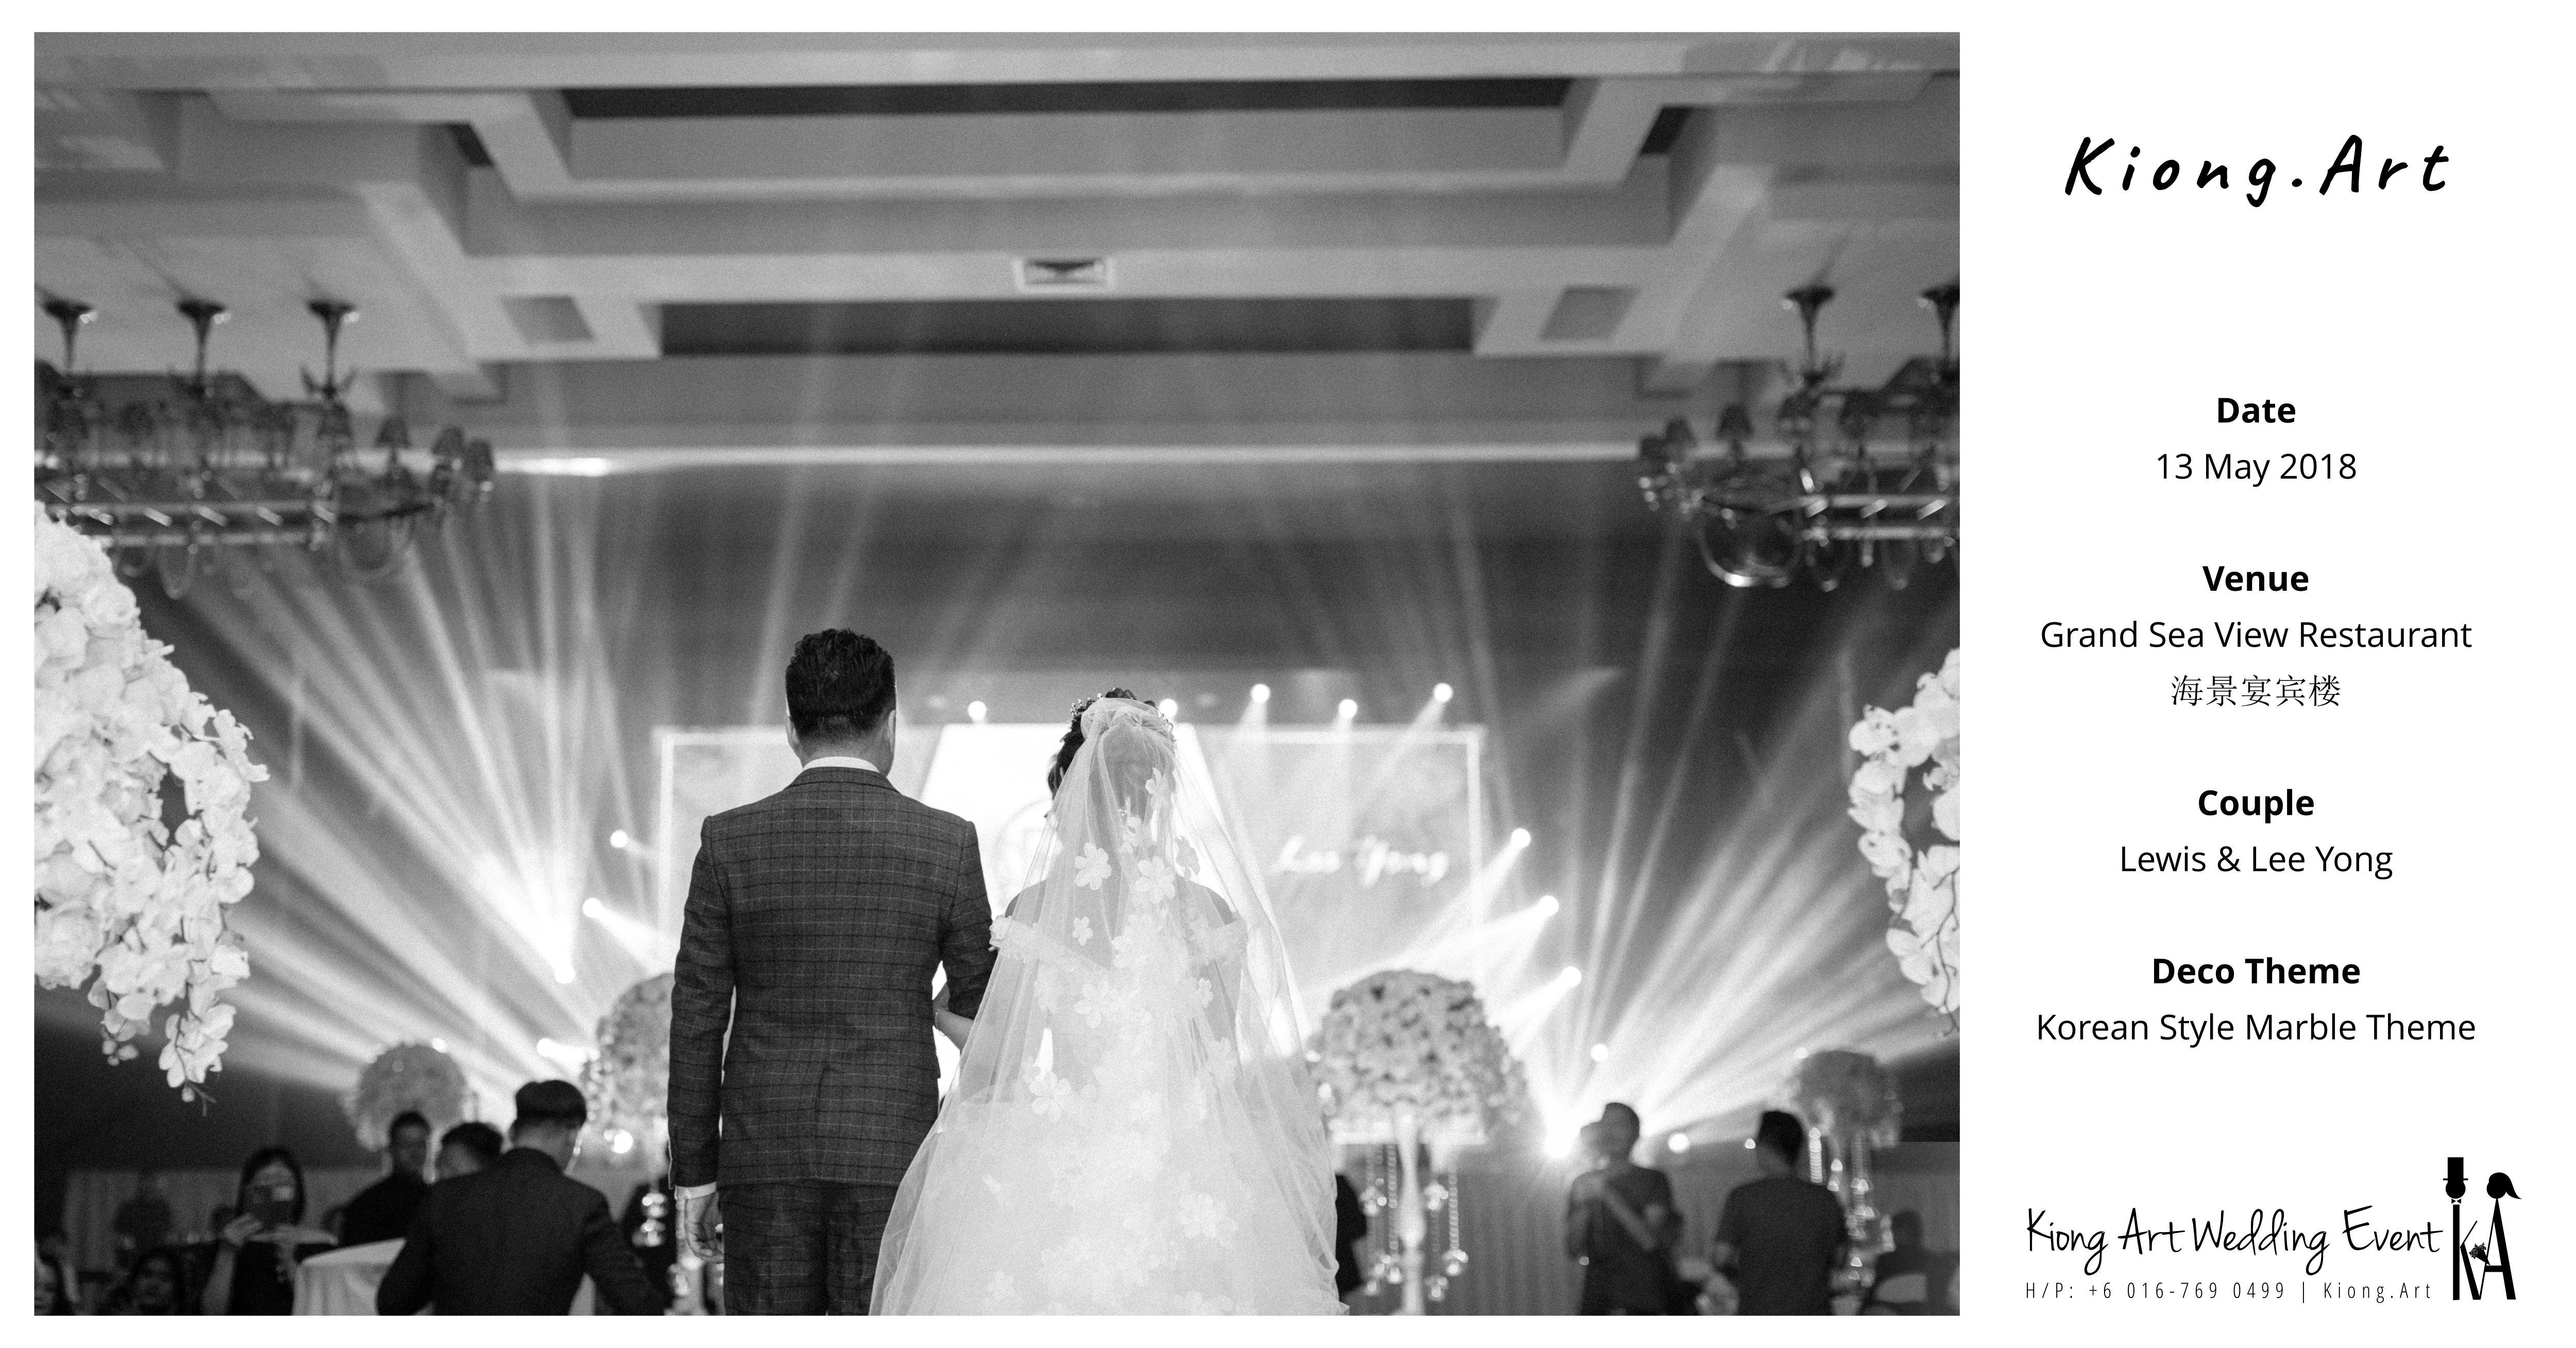 Kiong Art Wedding Event Kuala Lumpur Malaysia Event and Wedding Decoration Company One-stop Wedding Planning Services Wedding Theme Live Band Wedding Photography Videography A00-03